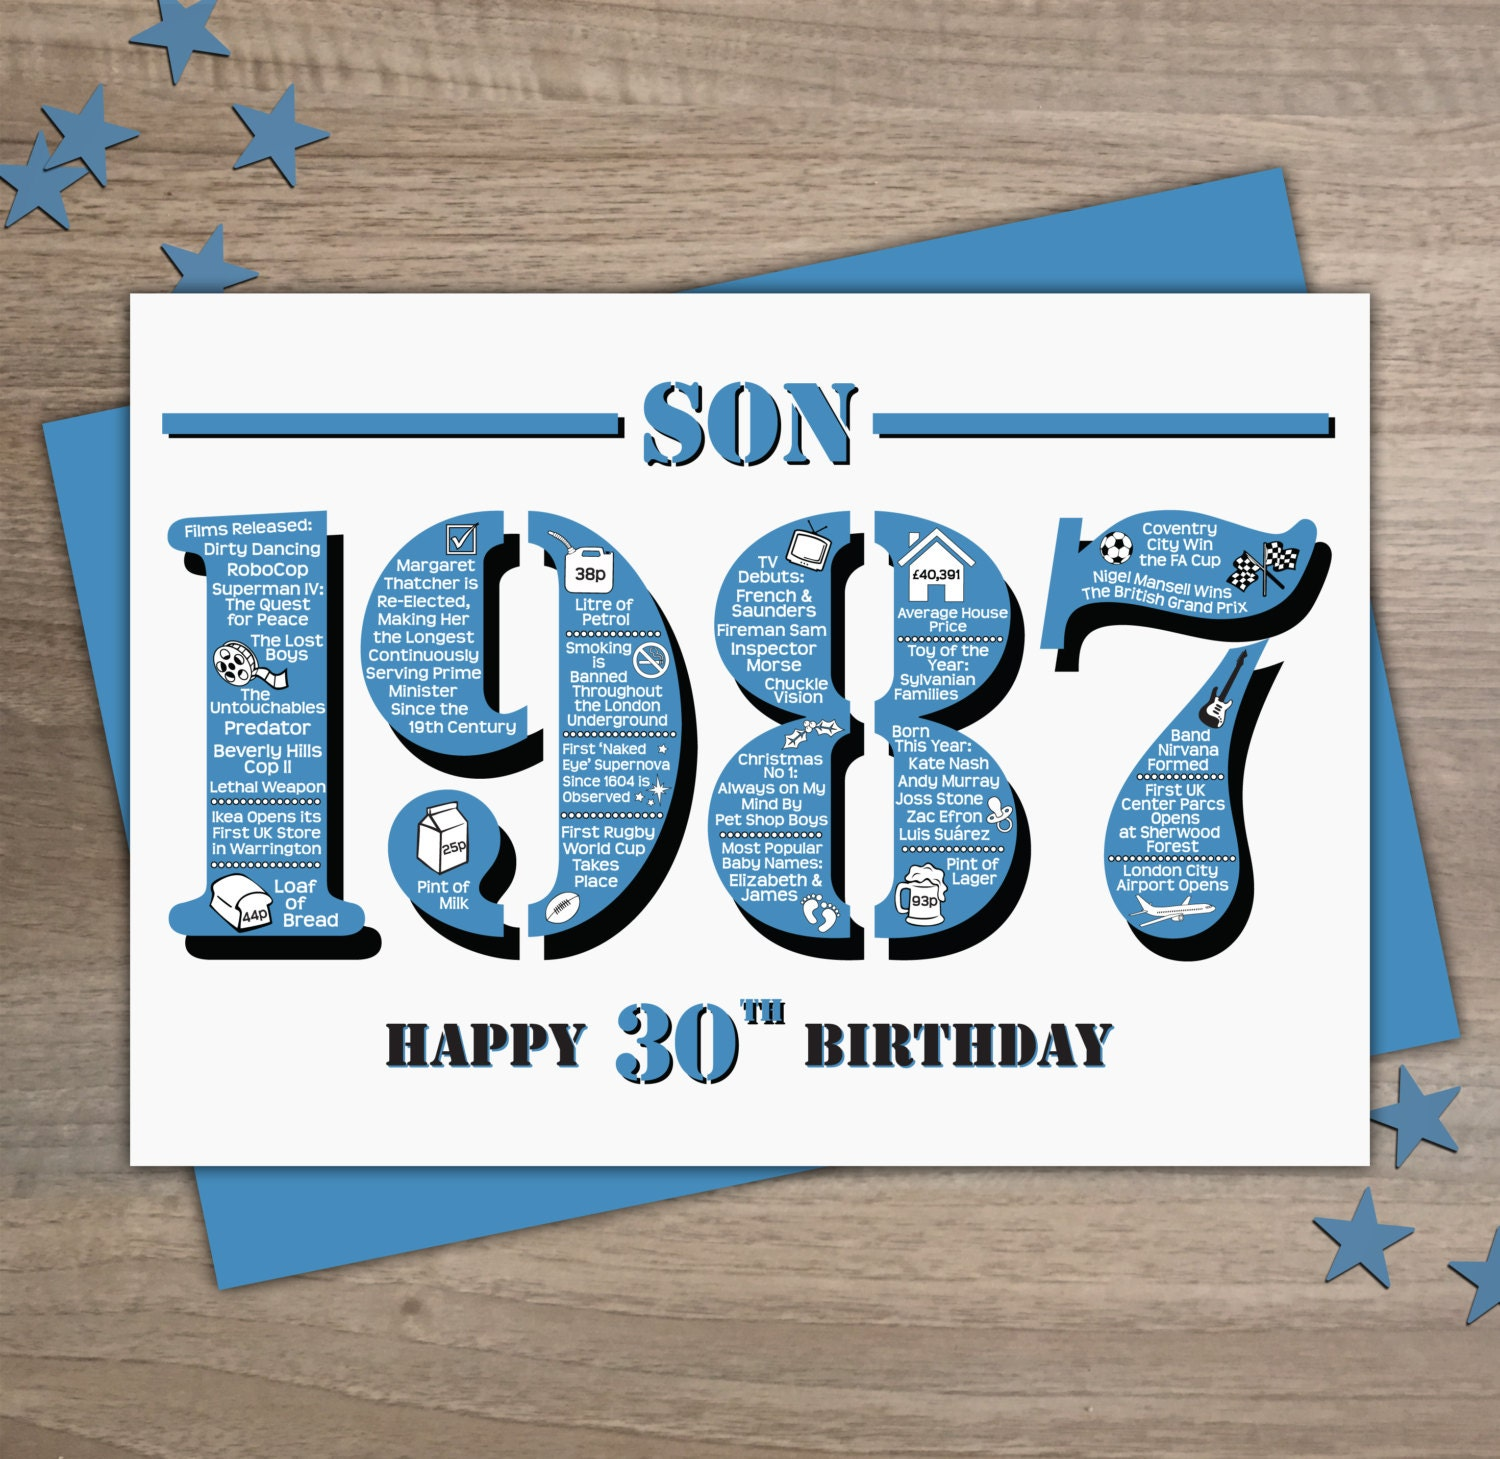 Son Th Birthday Cards Uk ~ Happy th birthday son card born in year of birth